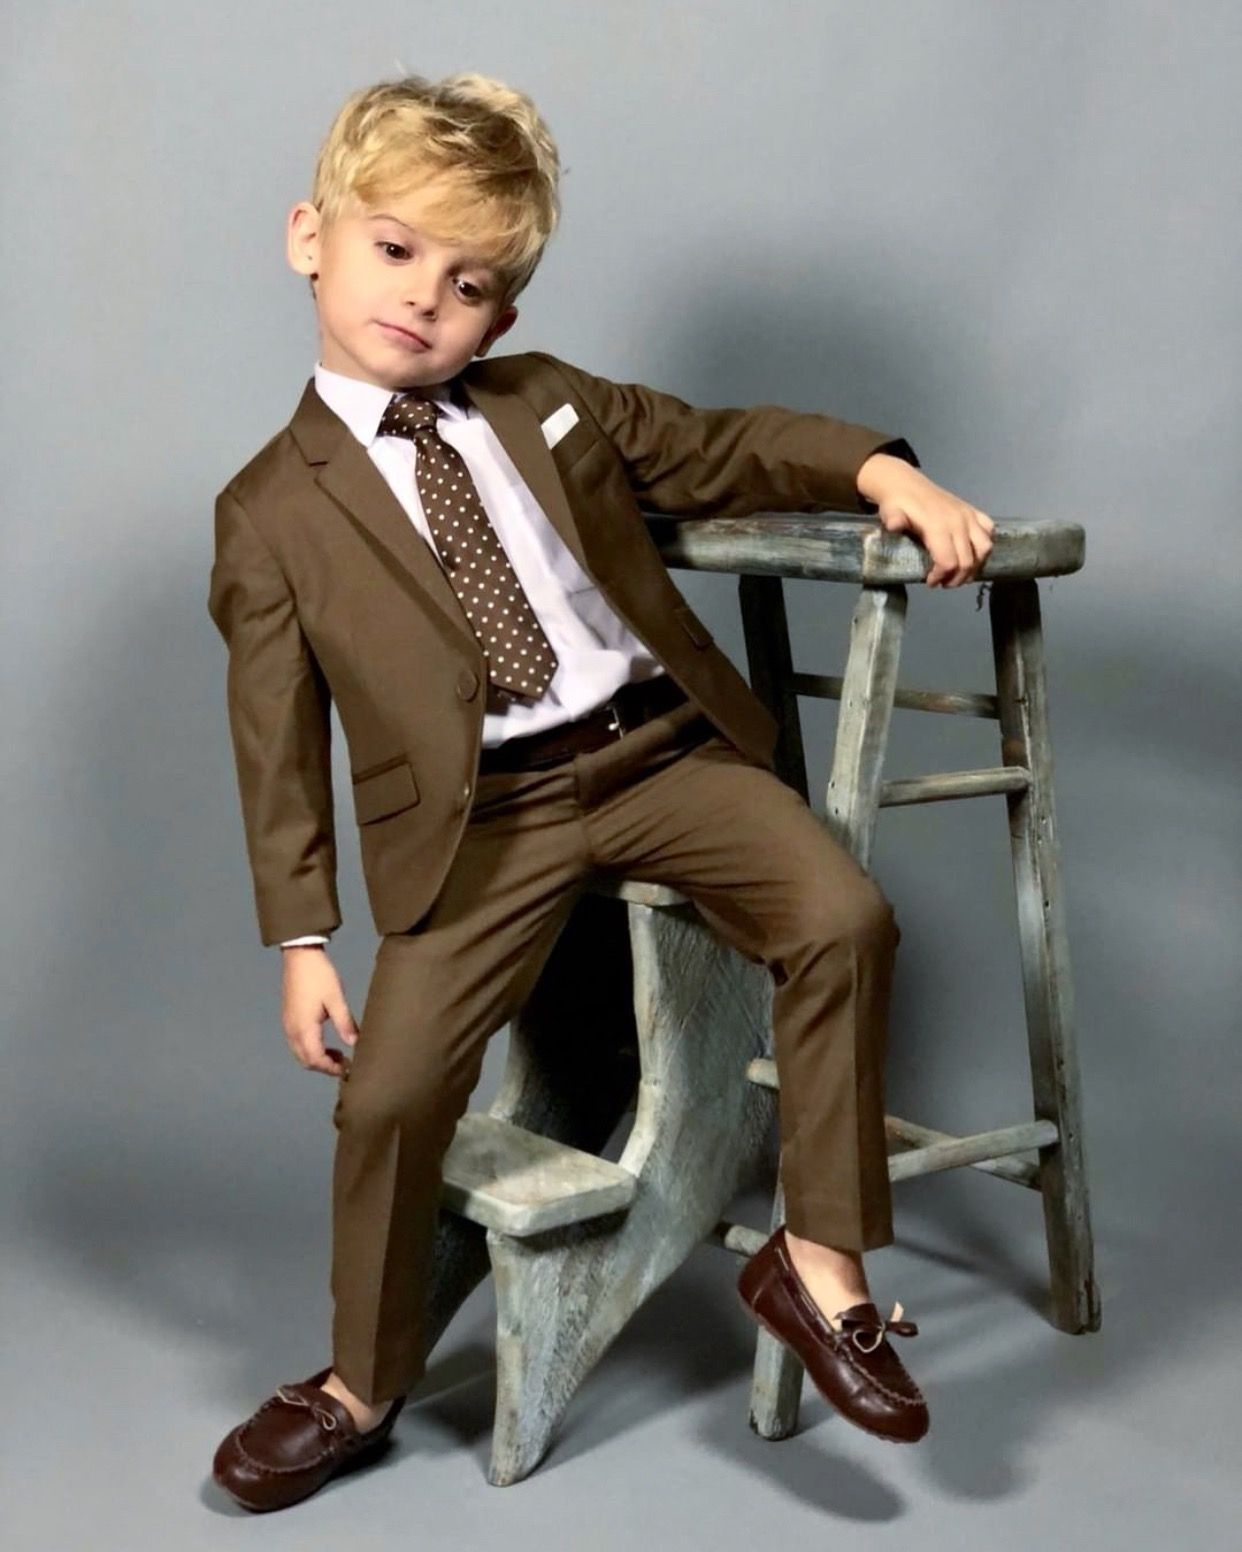 3883557c0512 First Class Boys  Slim Fit Three Piece Suit in Coco Brown